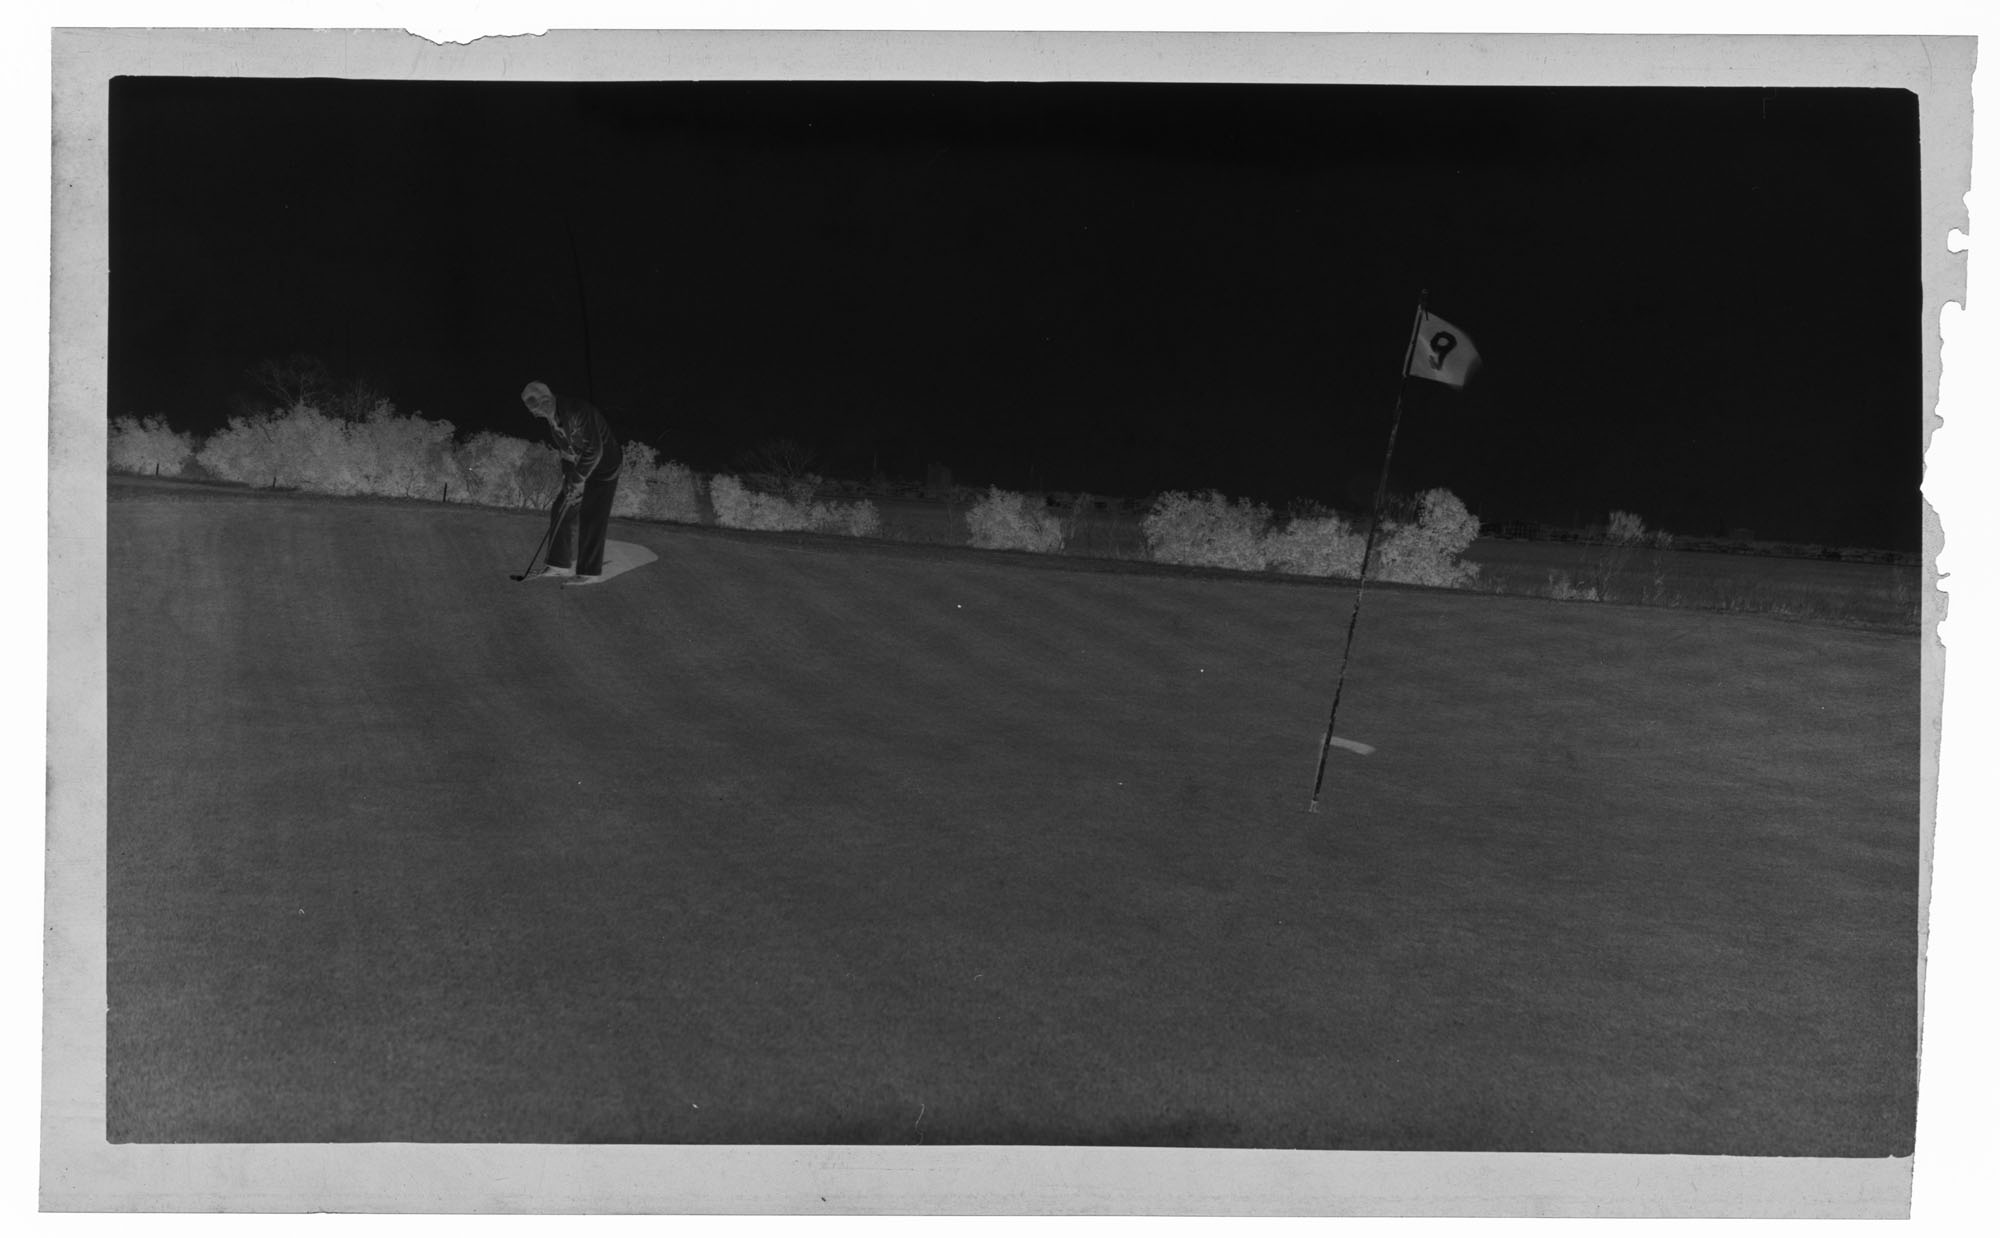 Negative of Golfing at the Ninth